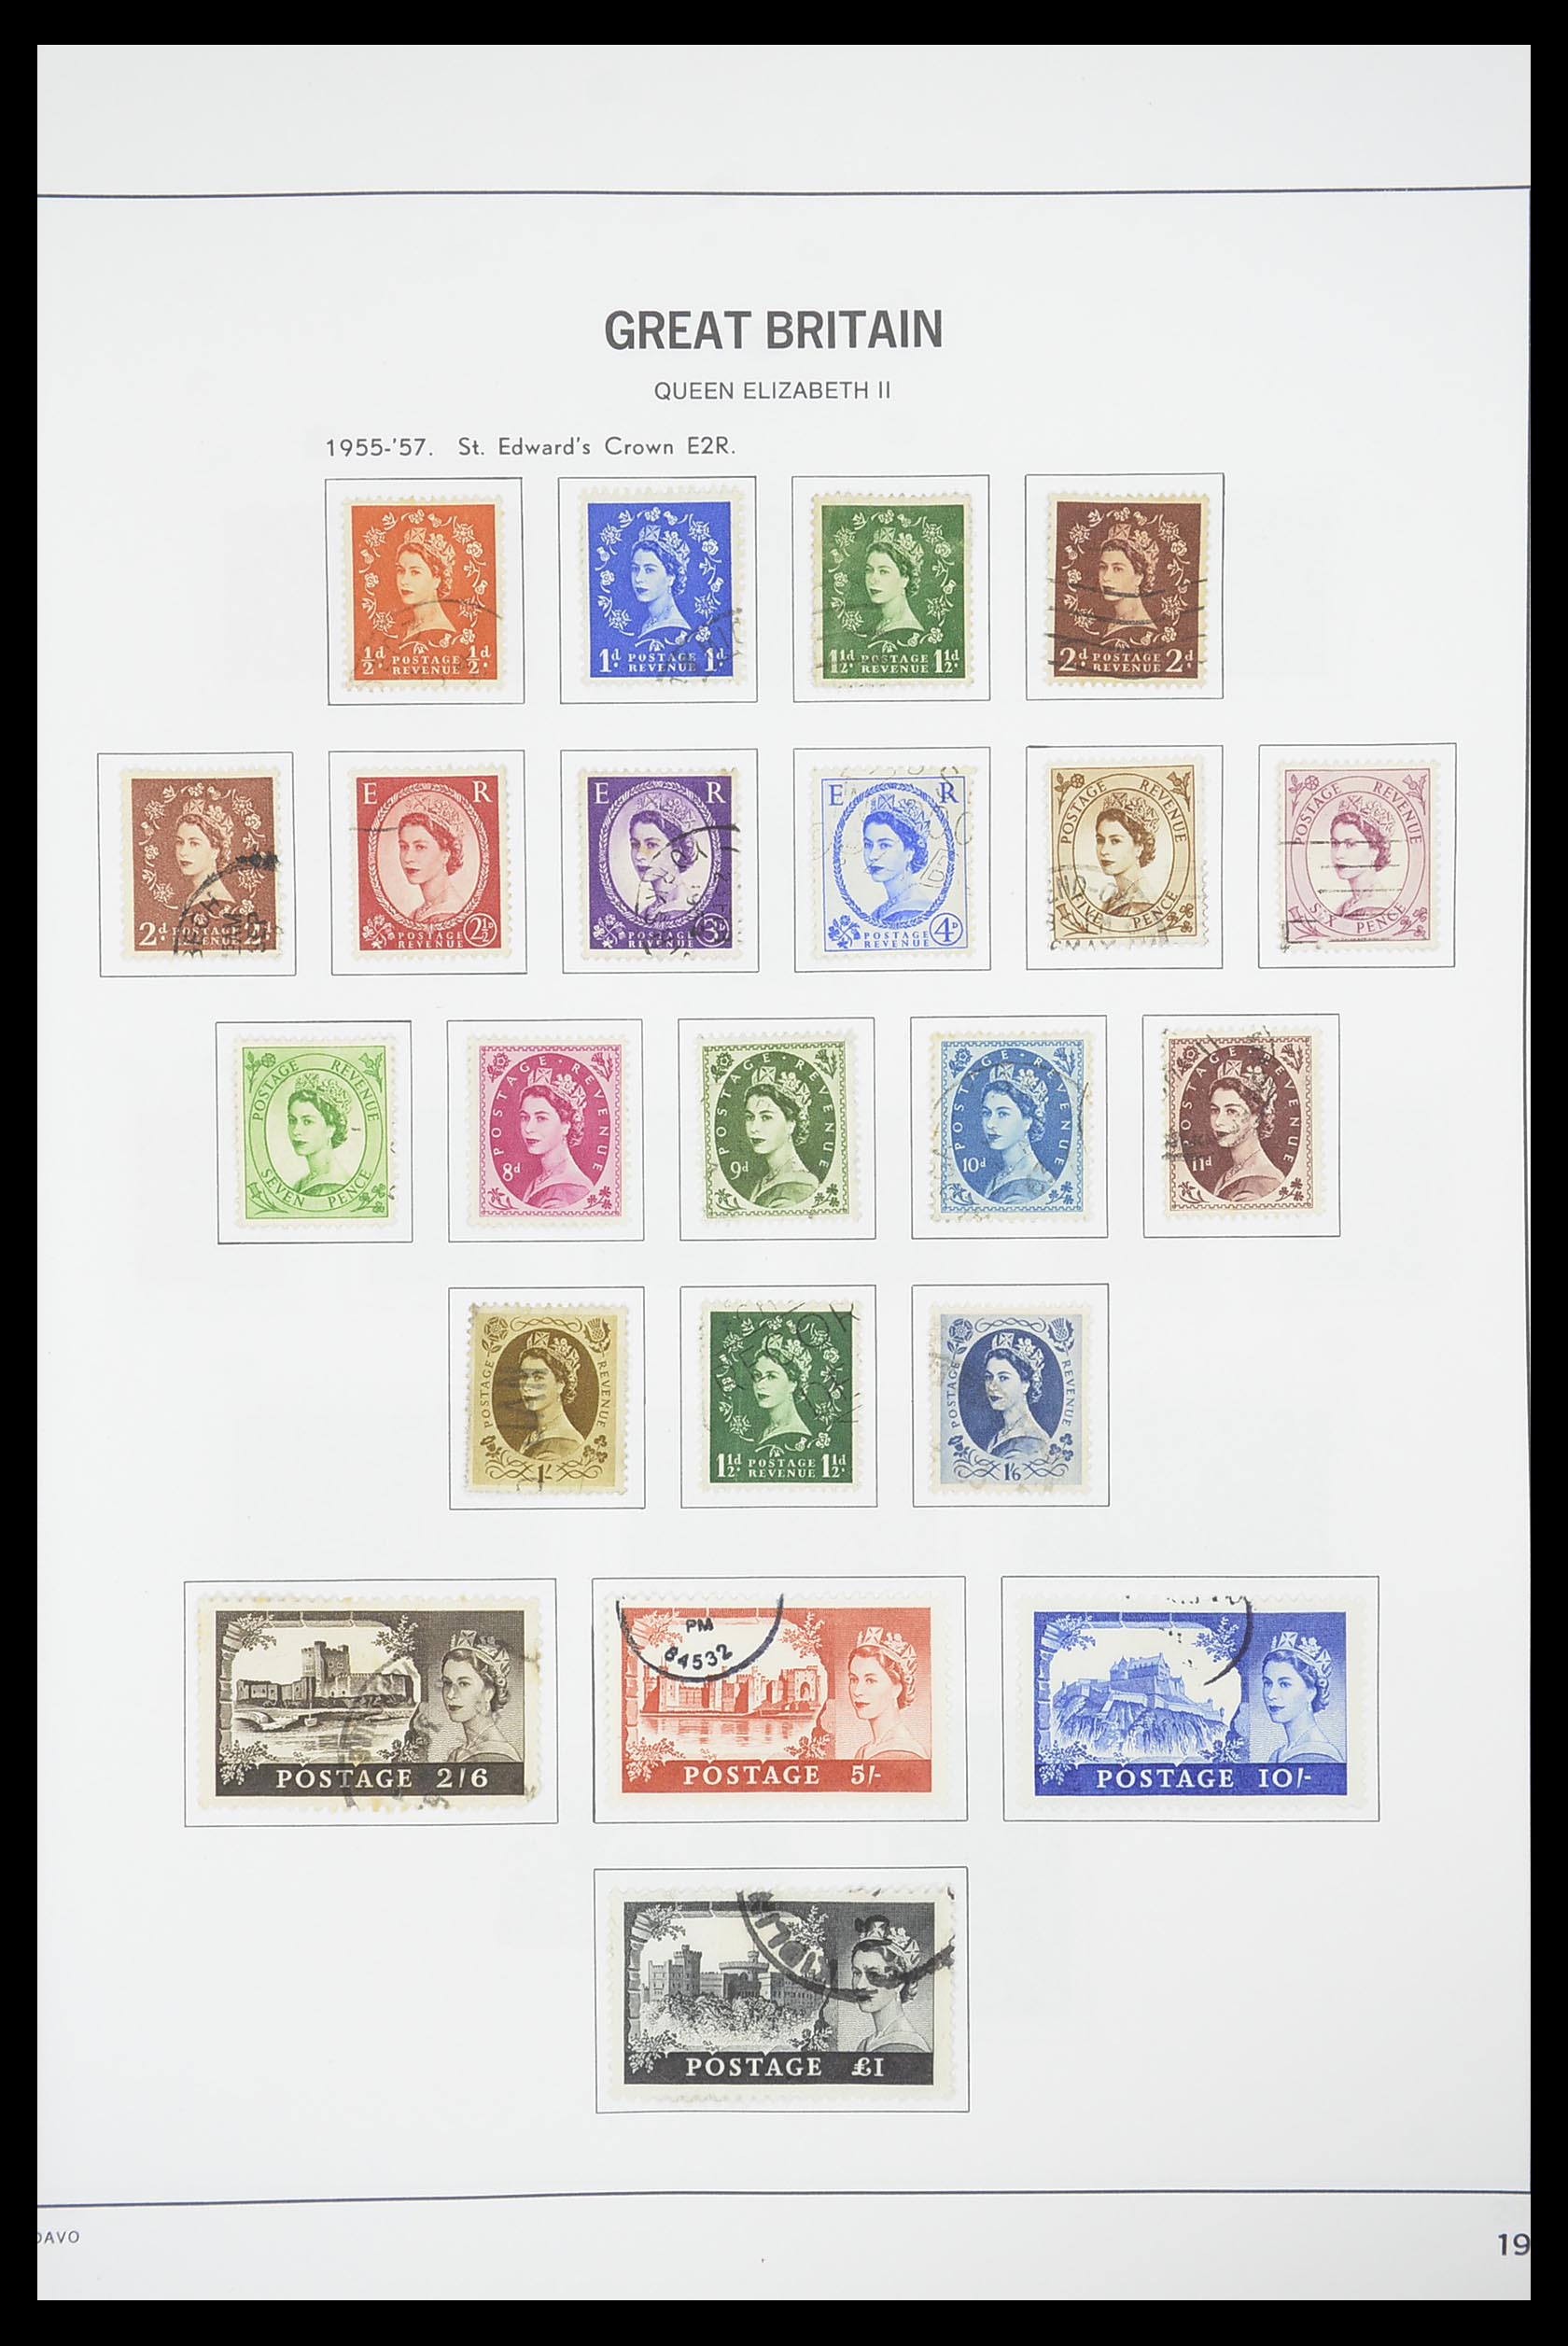 33898 018 - Stamp collection 33898 Great Britain 1840-2006.